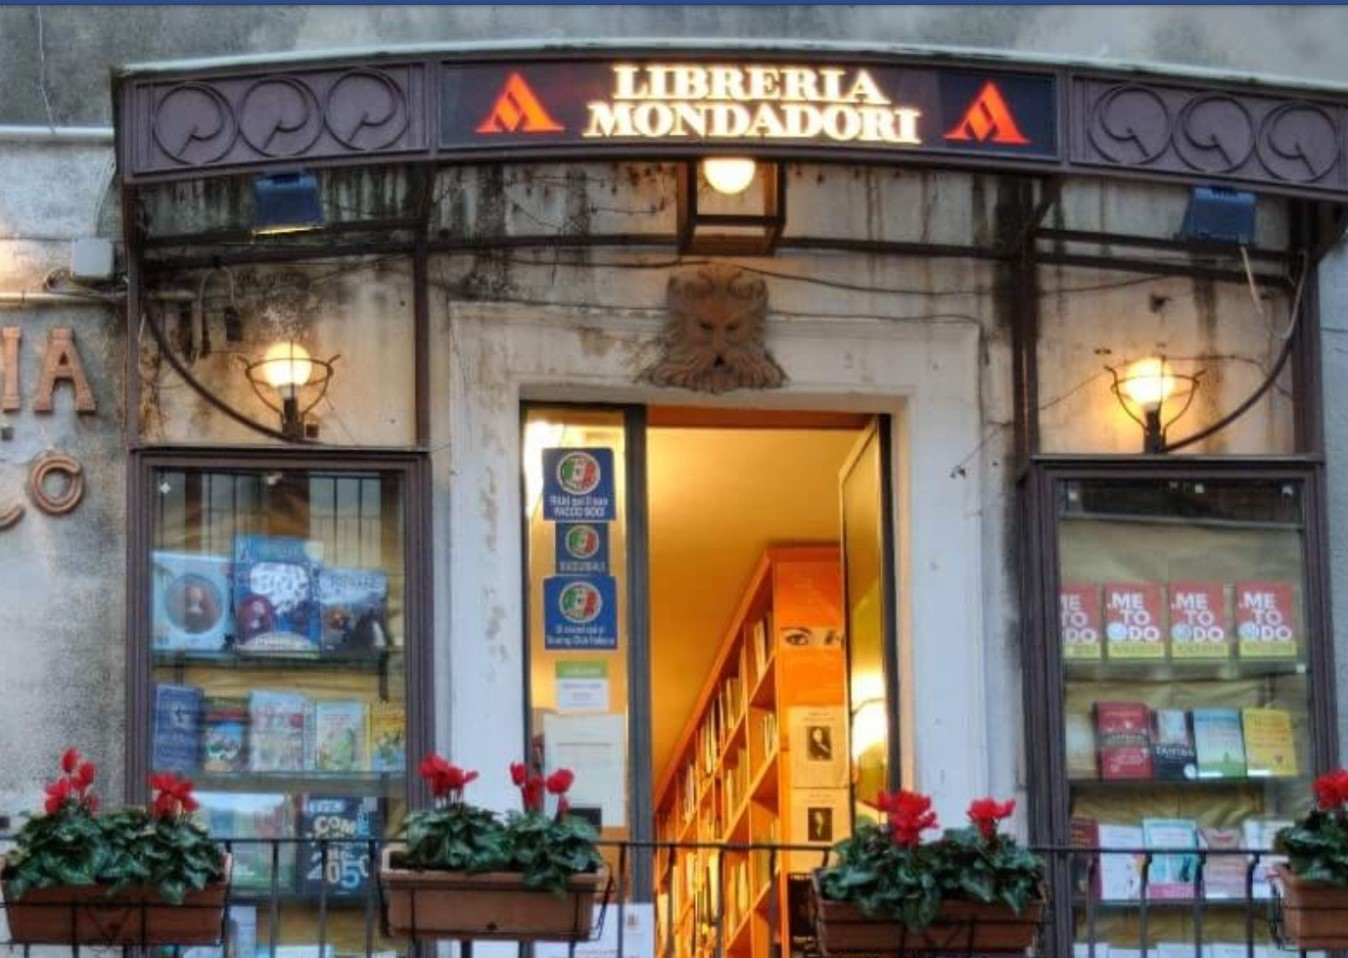 Flash mob per salvare unica libreria di Taormina